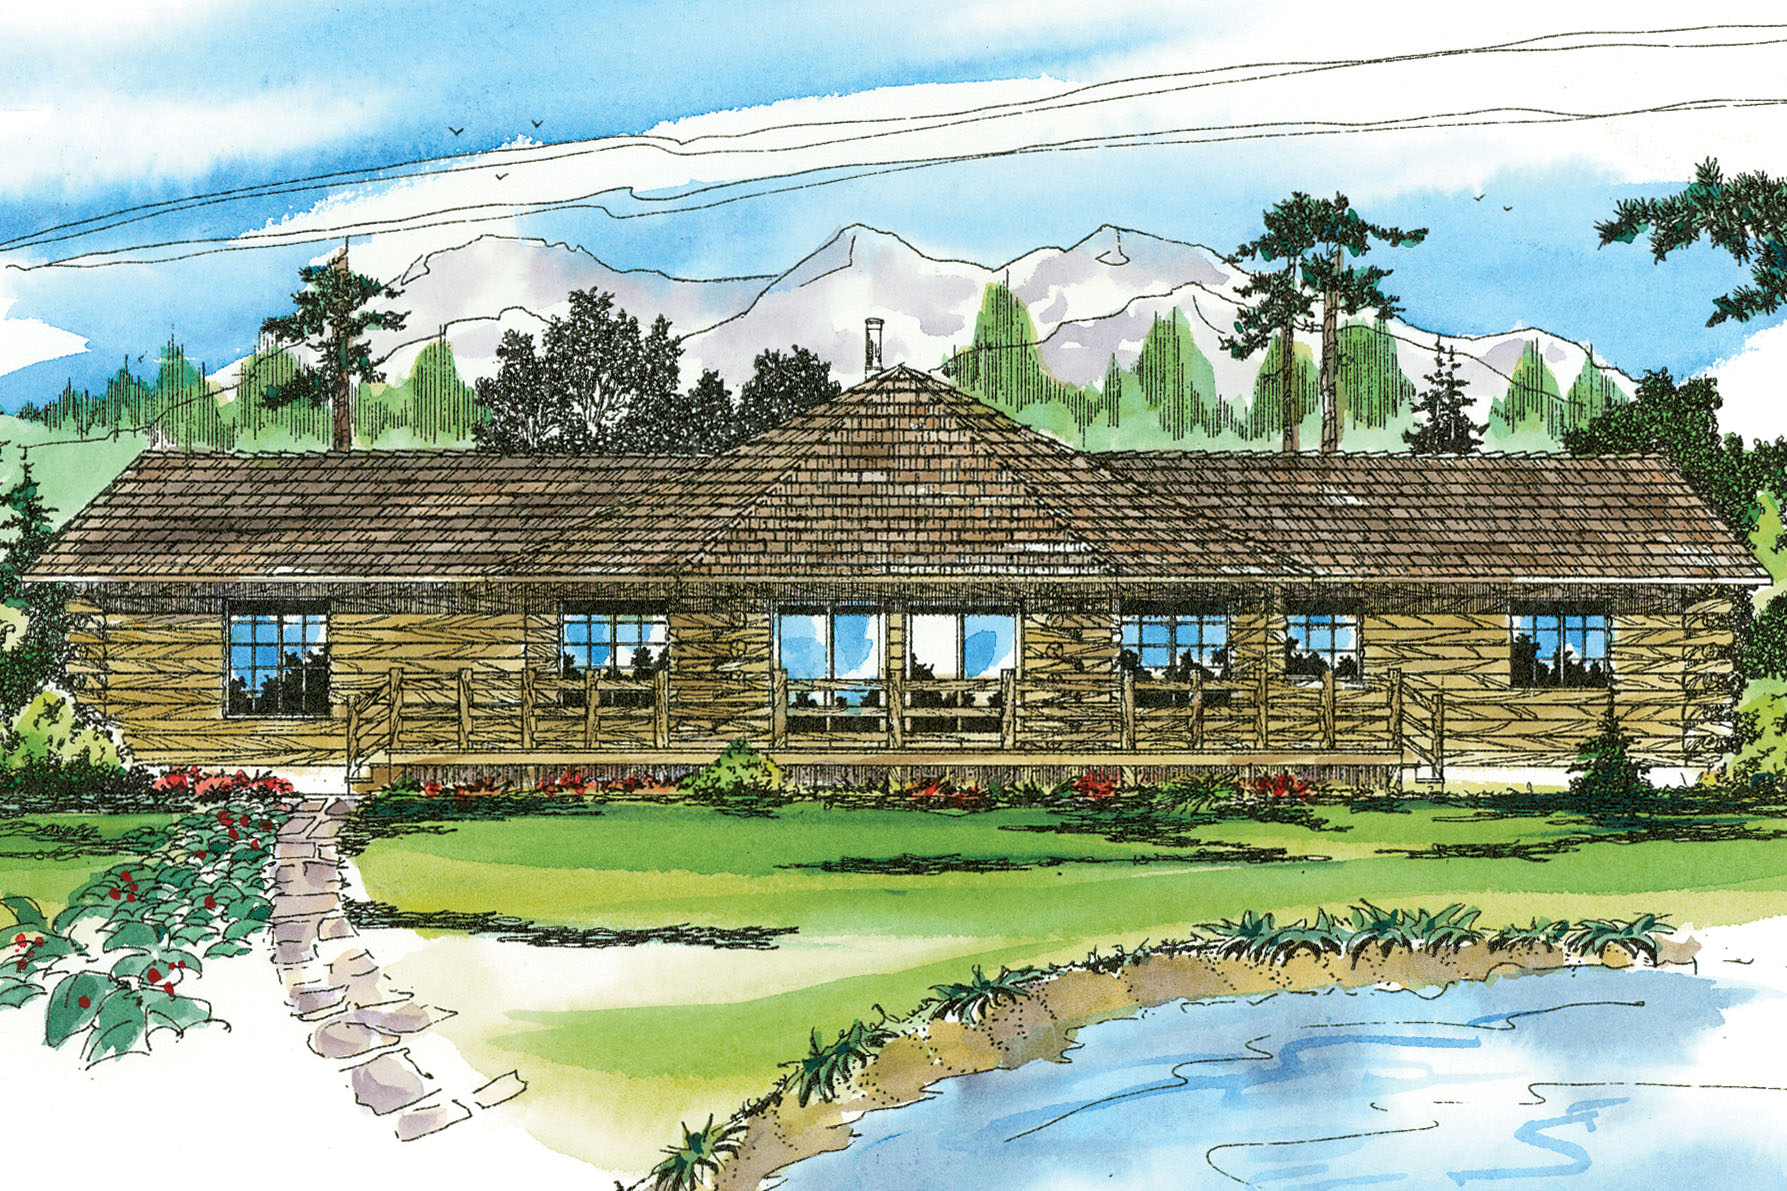 Featured House Plan of the Week, Ridgeline 10-062, Lodge House Plan, Home Plan